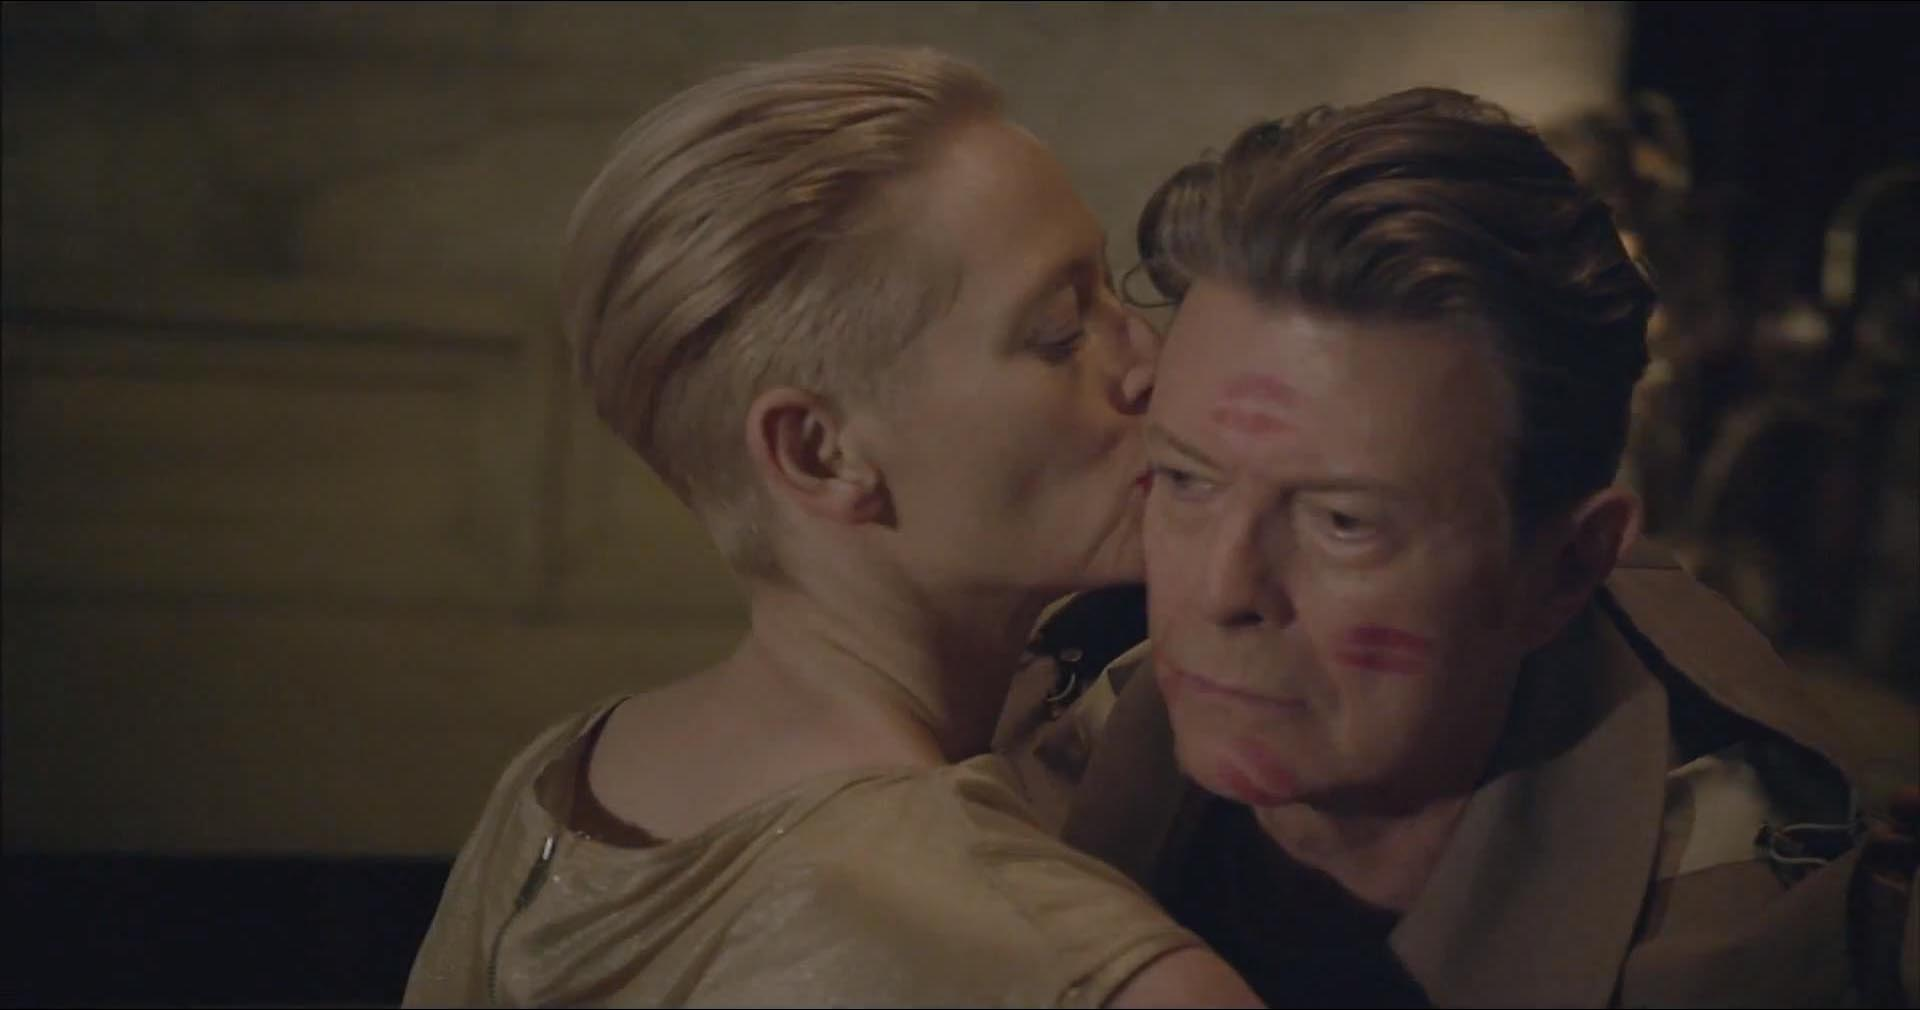 Tilda Swinton plants a kiss on David Bowie in The Stars (Are Out Tonight) video  (Picture: ISO Records)